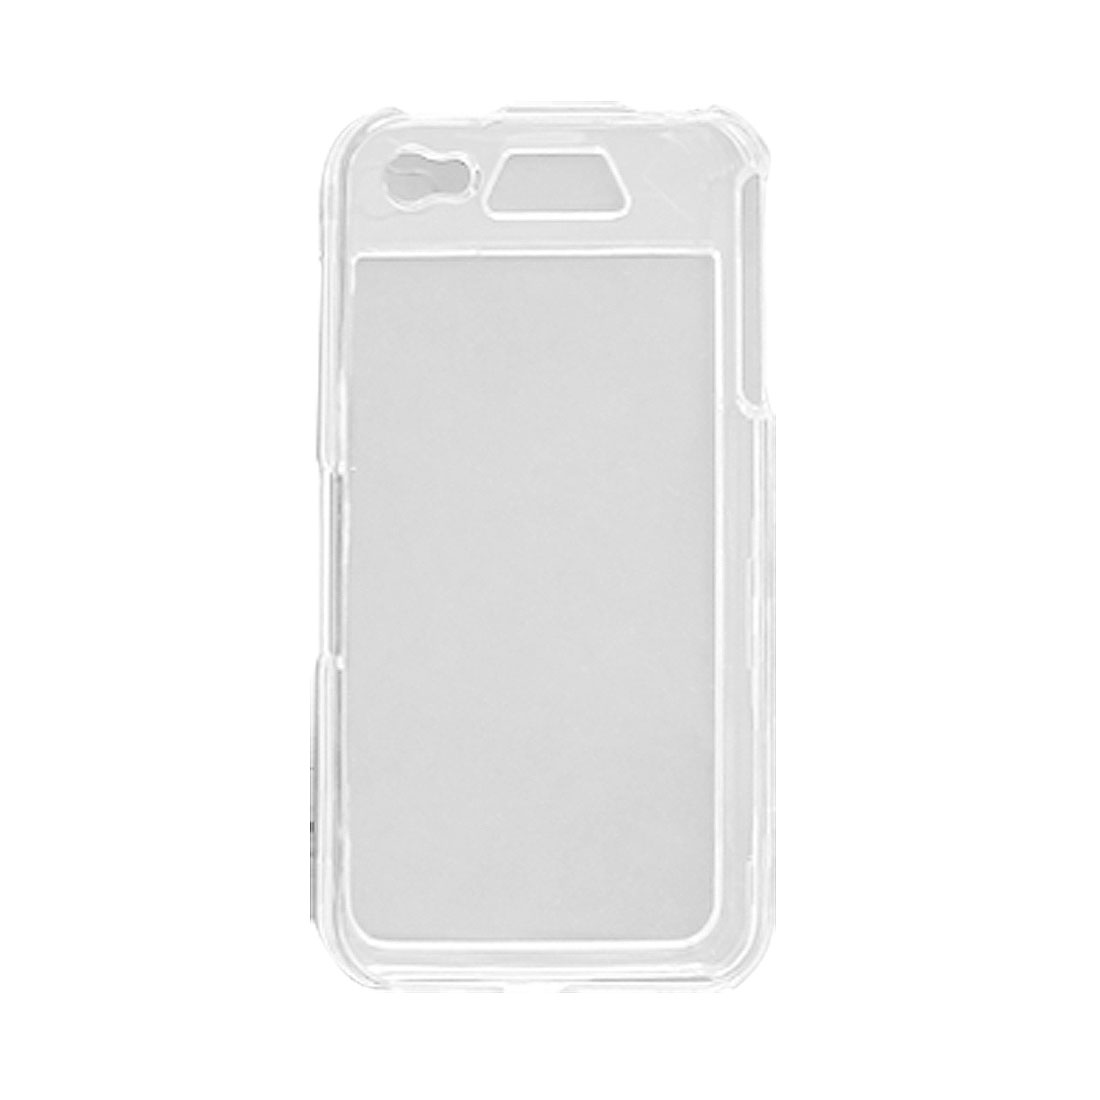 Black Neoprene Armband w Clear Hard Plastic Shell for iPhone 4